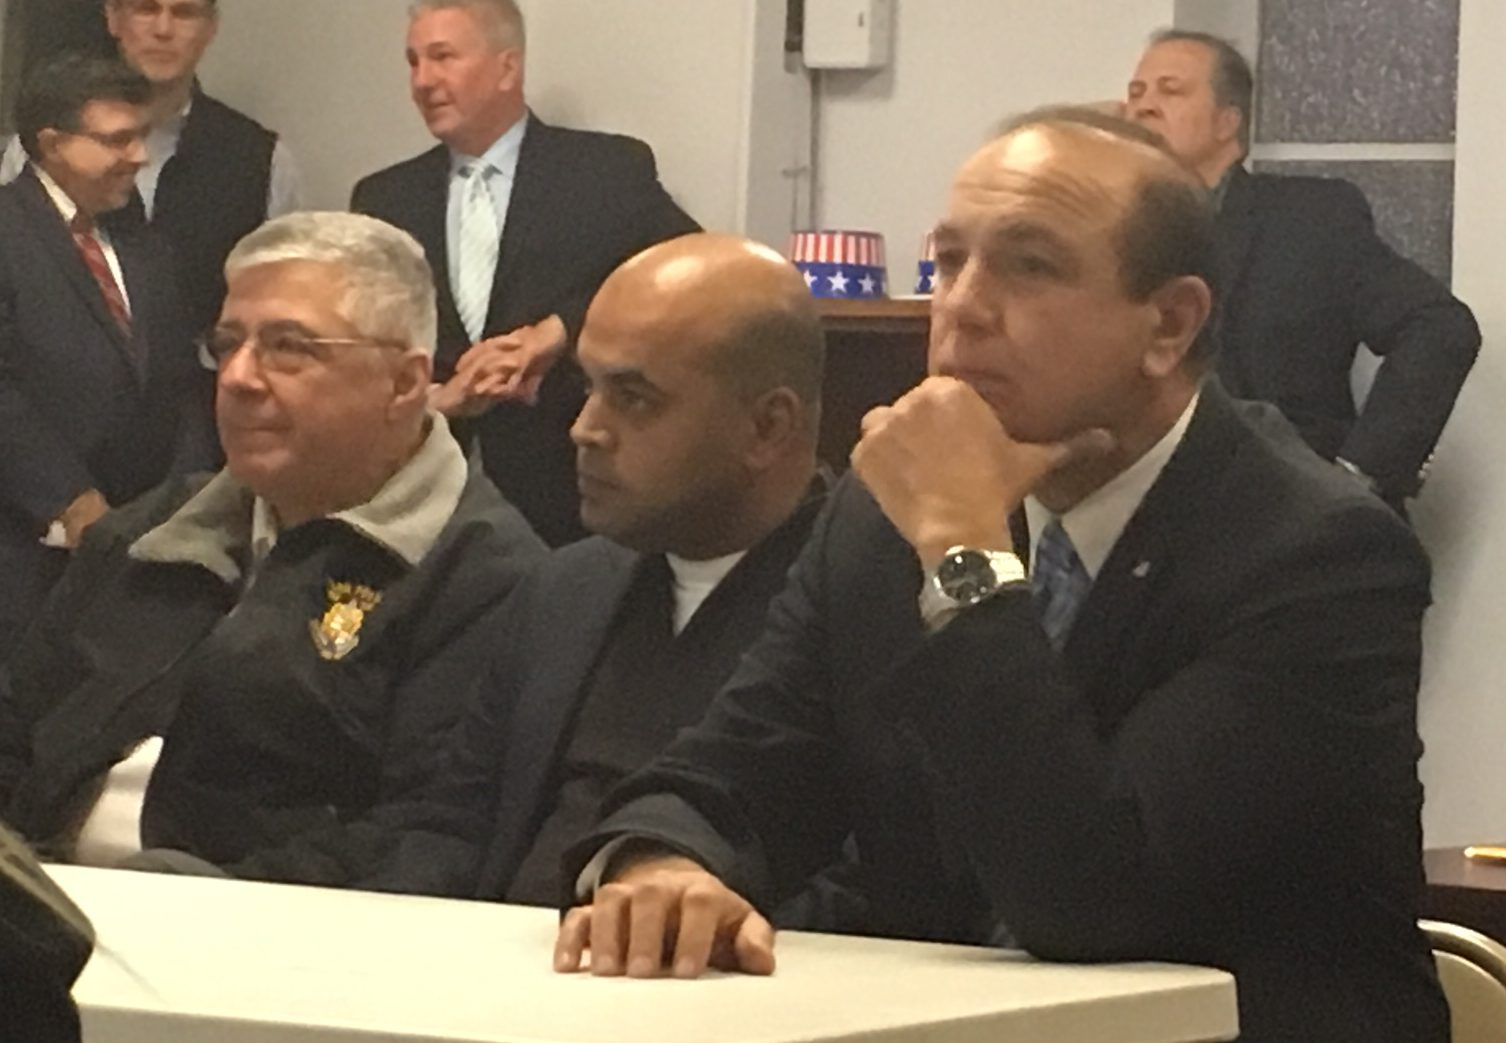 From left: Sette, Barlas and DiGaetano.